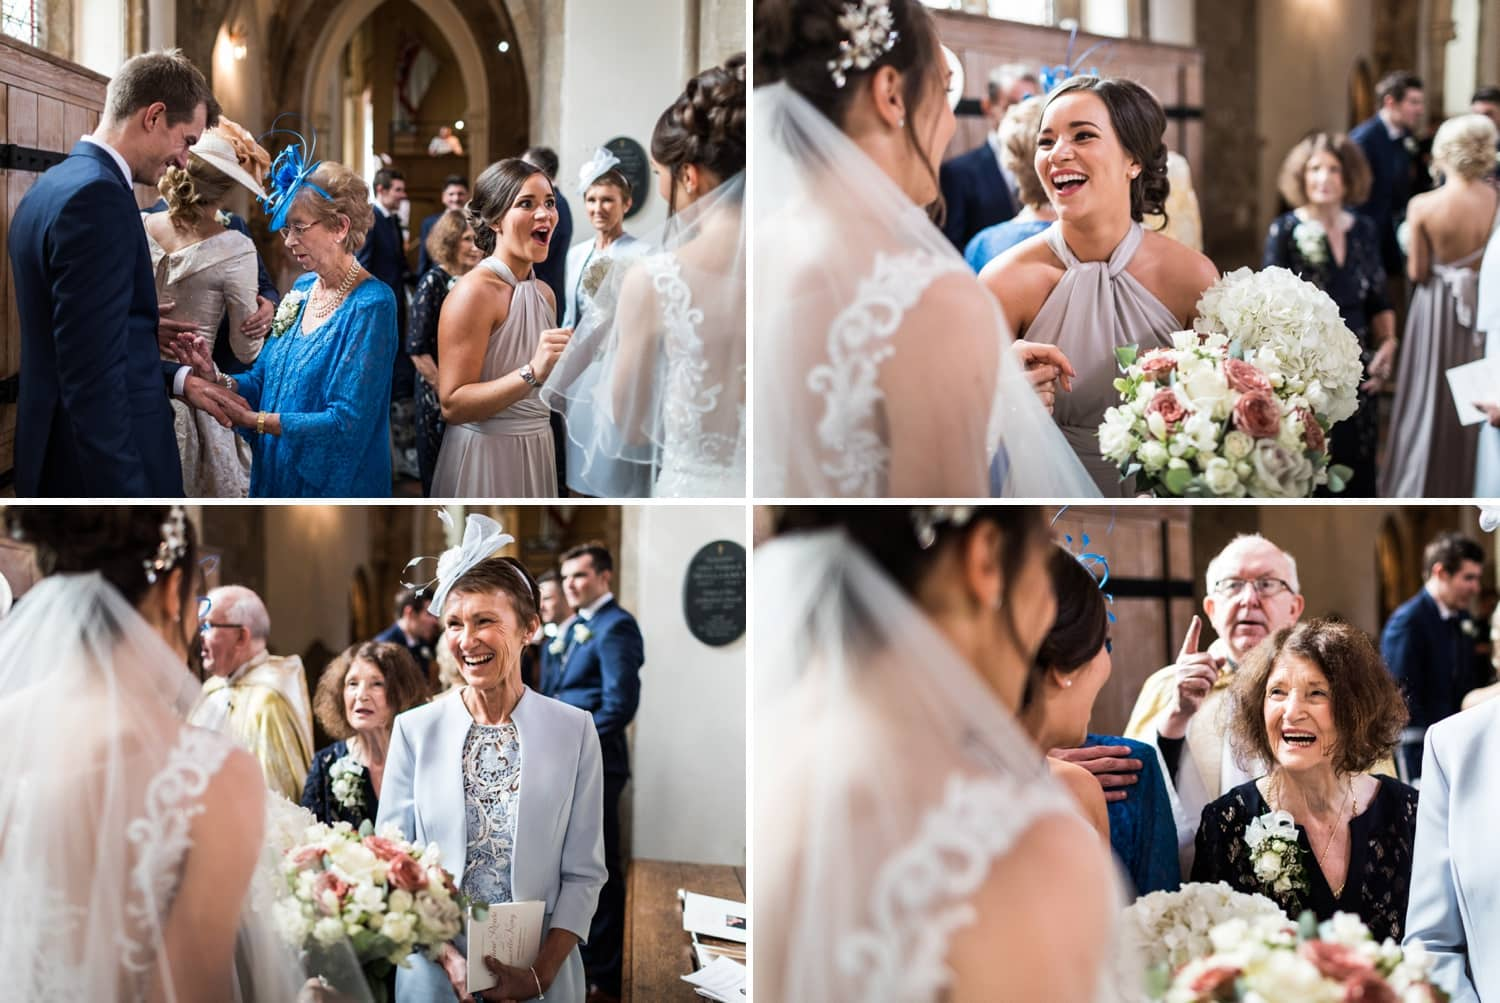 Wedding congratulations at Llandaff Cathedral